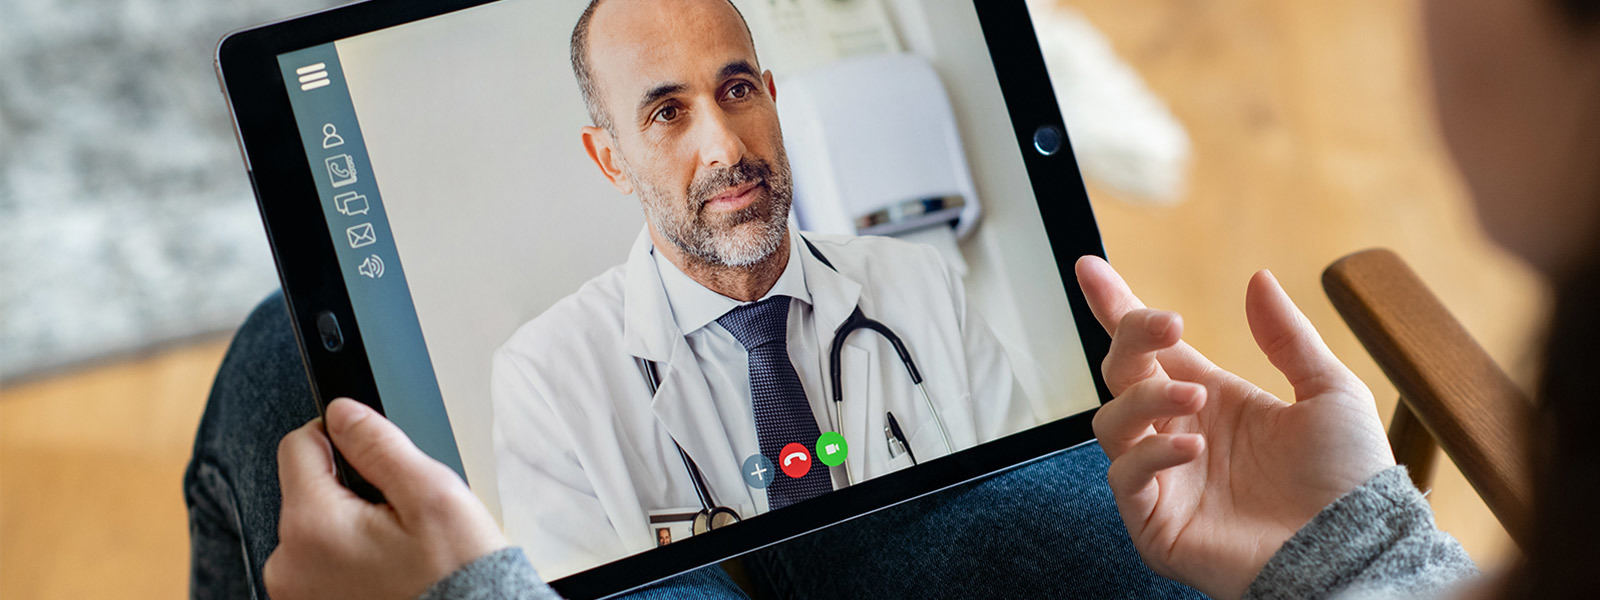 Image of employee using a tablet to access 24/7 Digital Health services